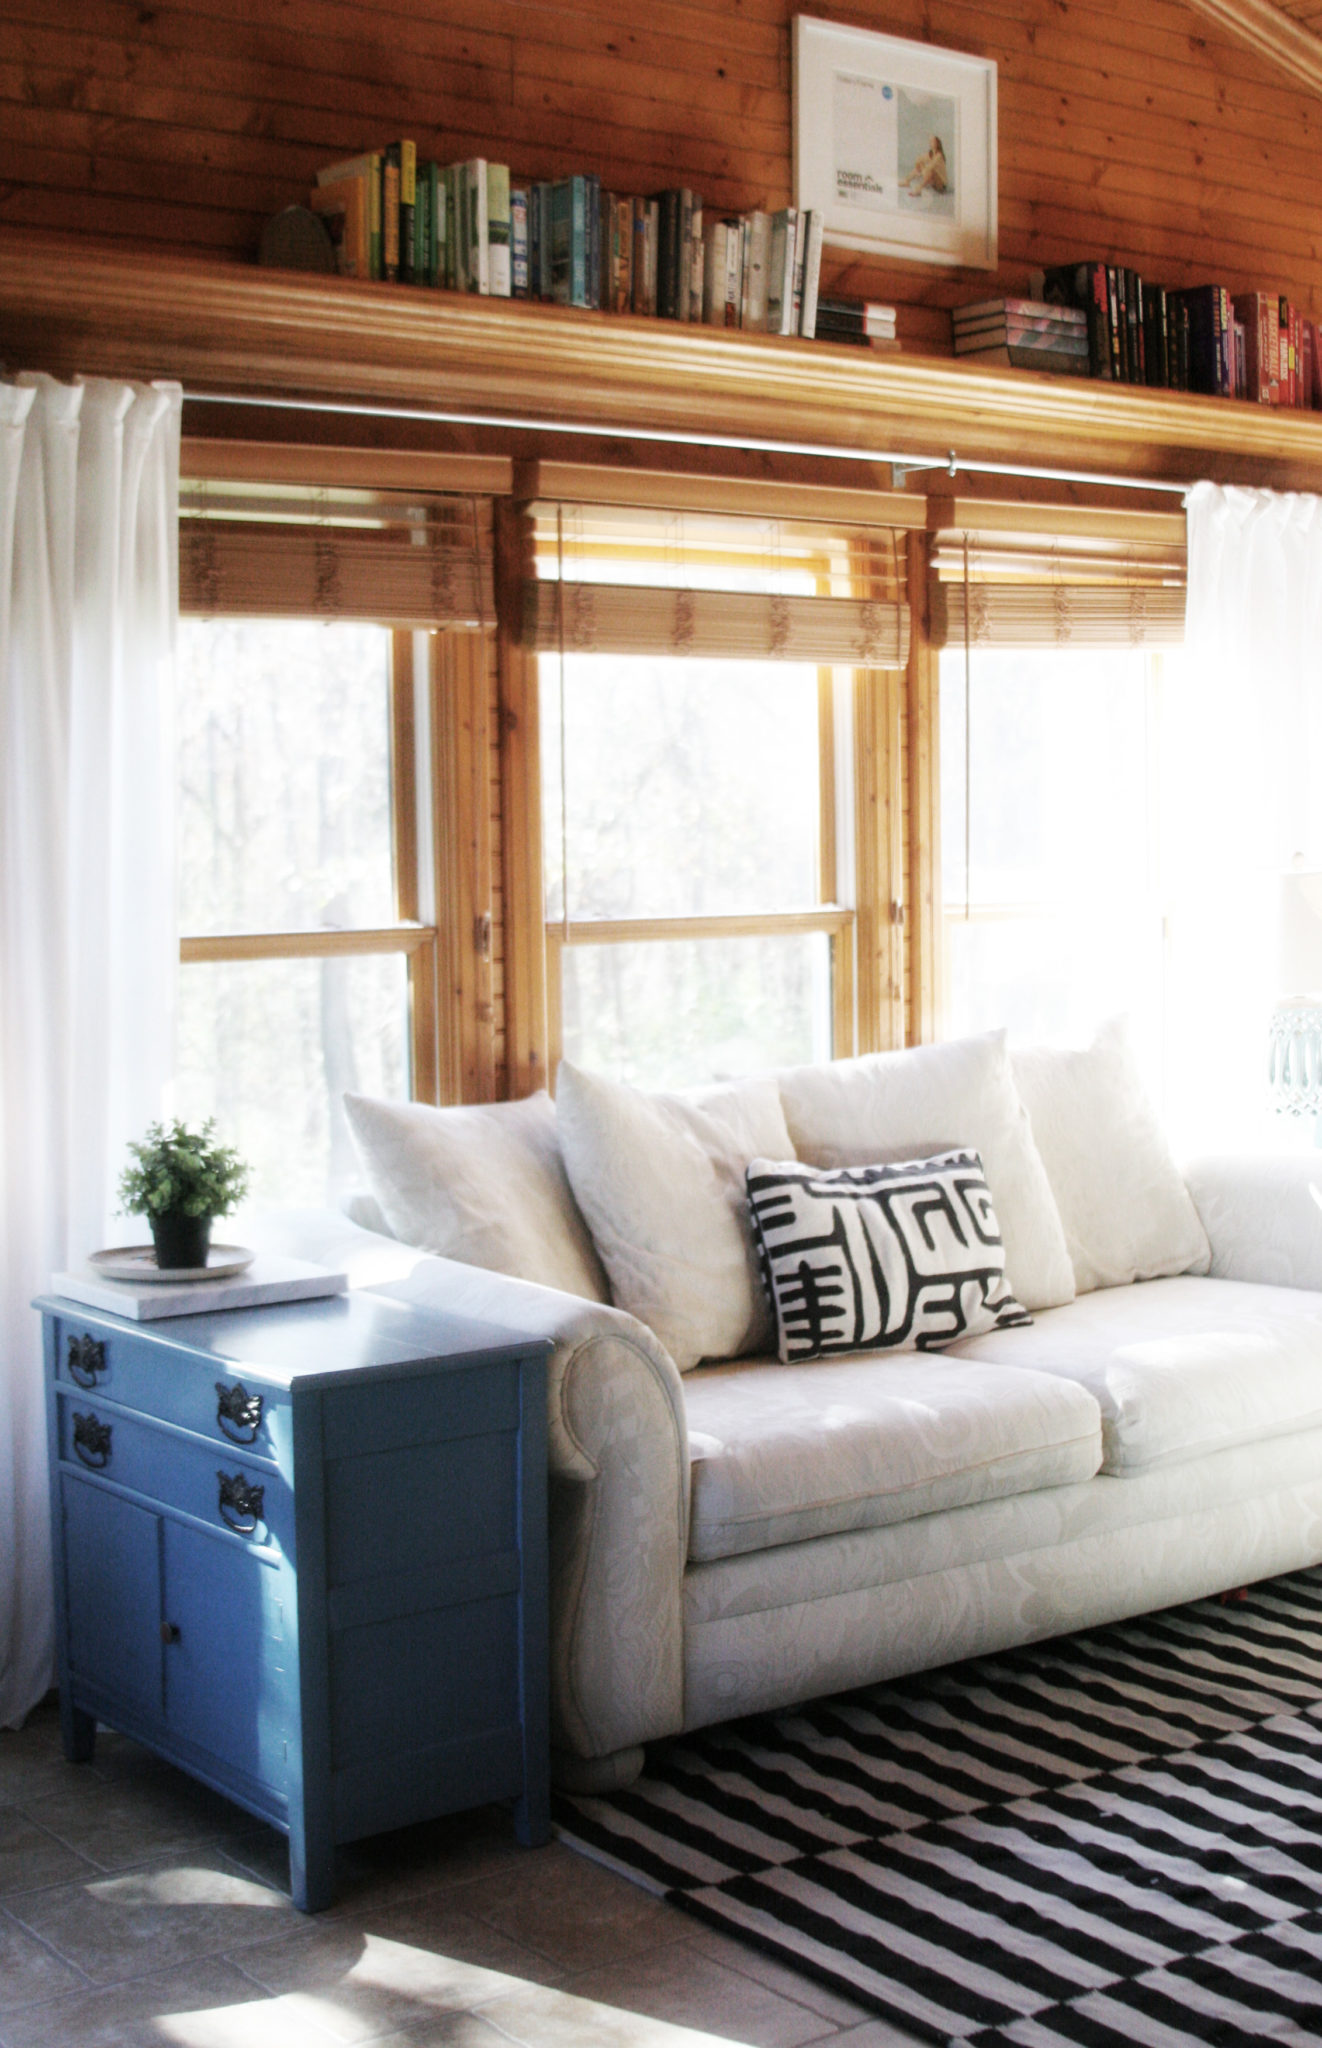 How To Make Long Curtain Rods For Sunrooms And Big Windows Craftivity Designs